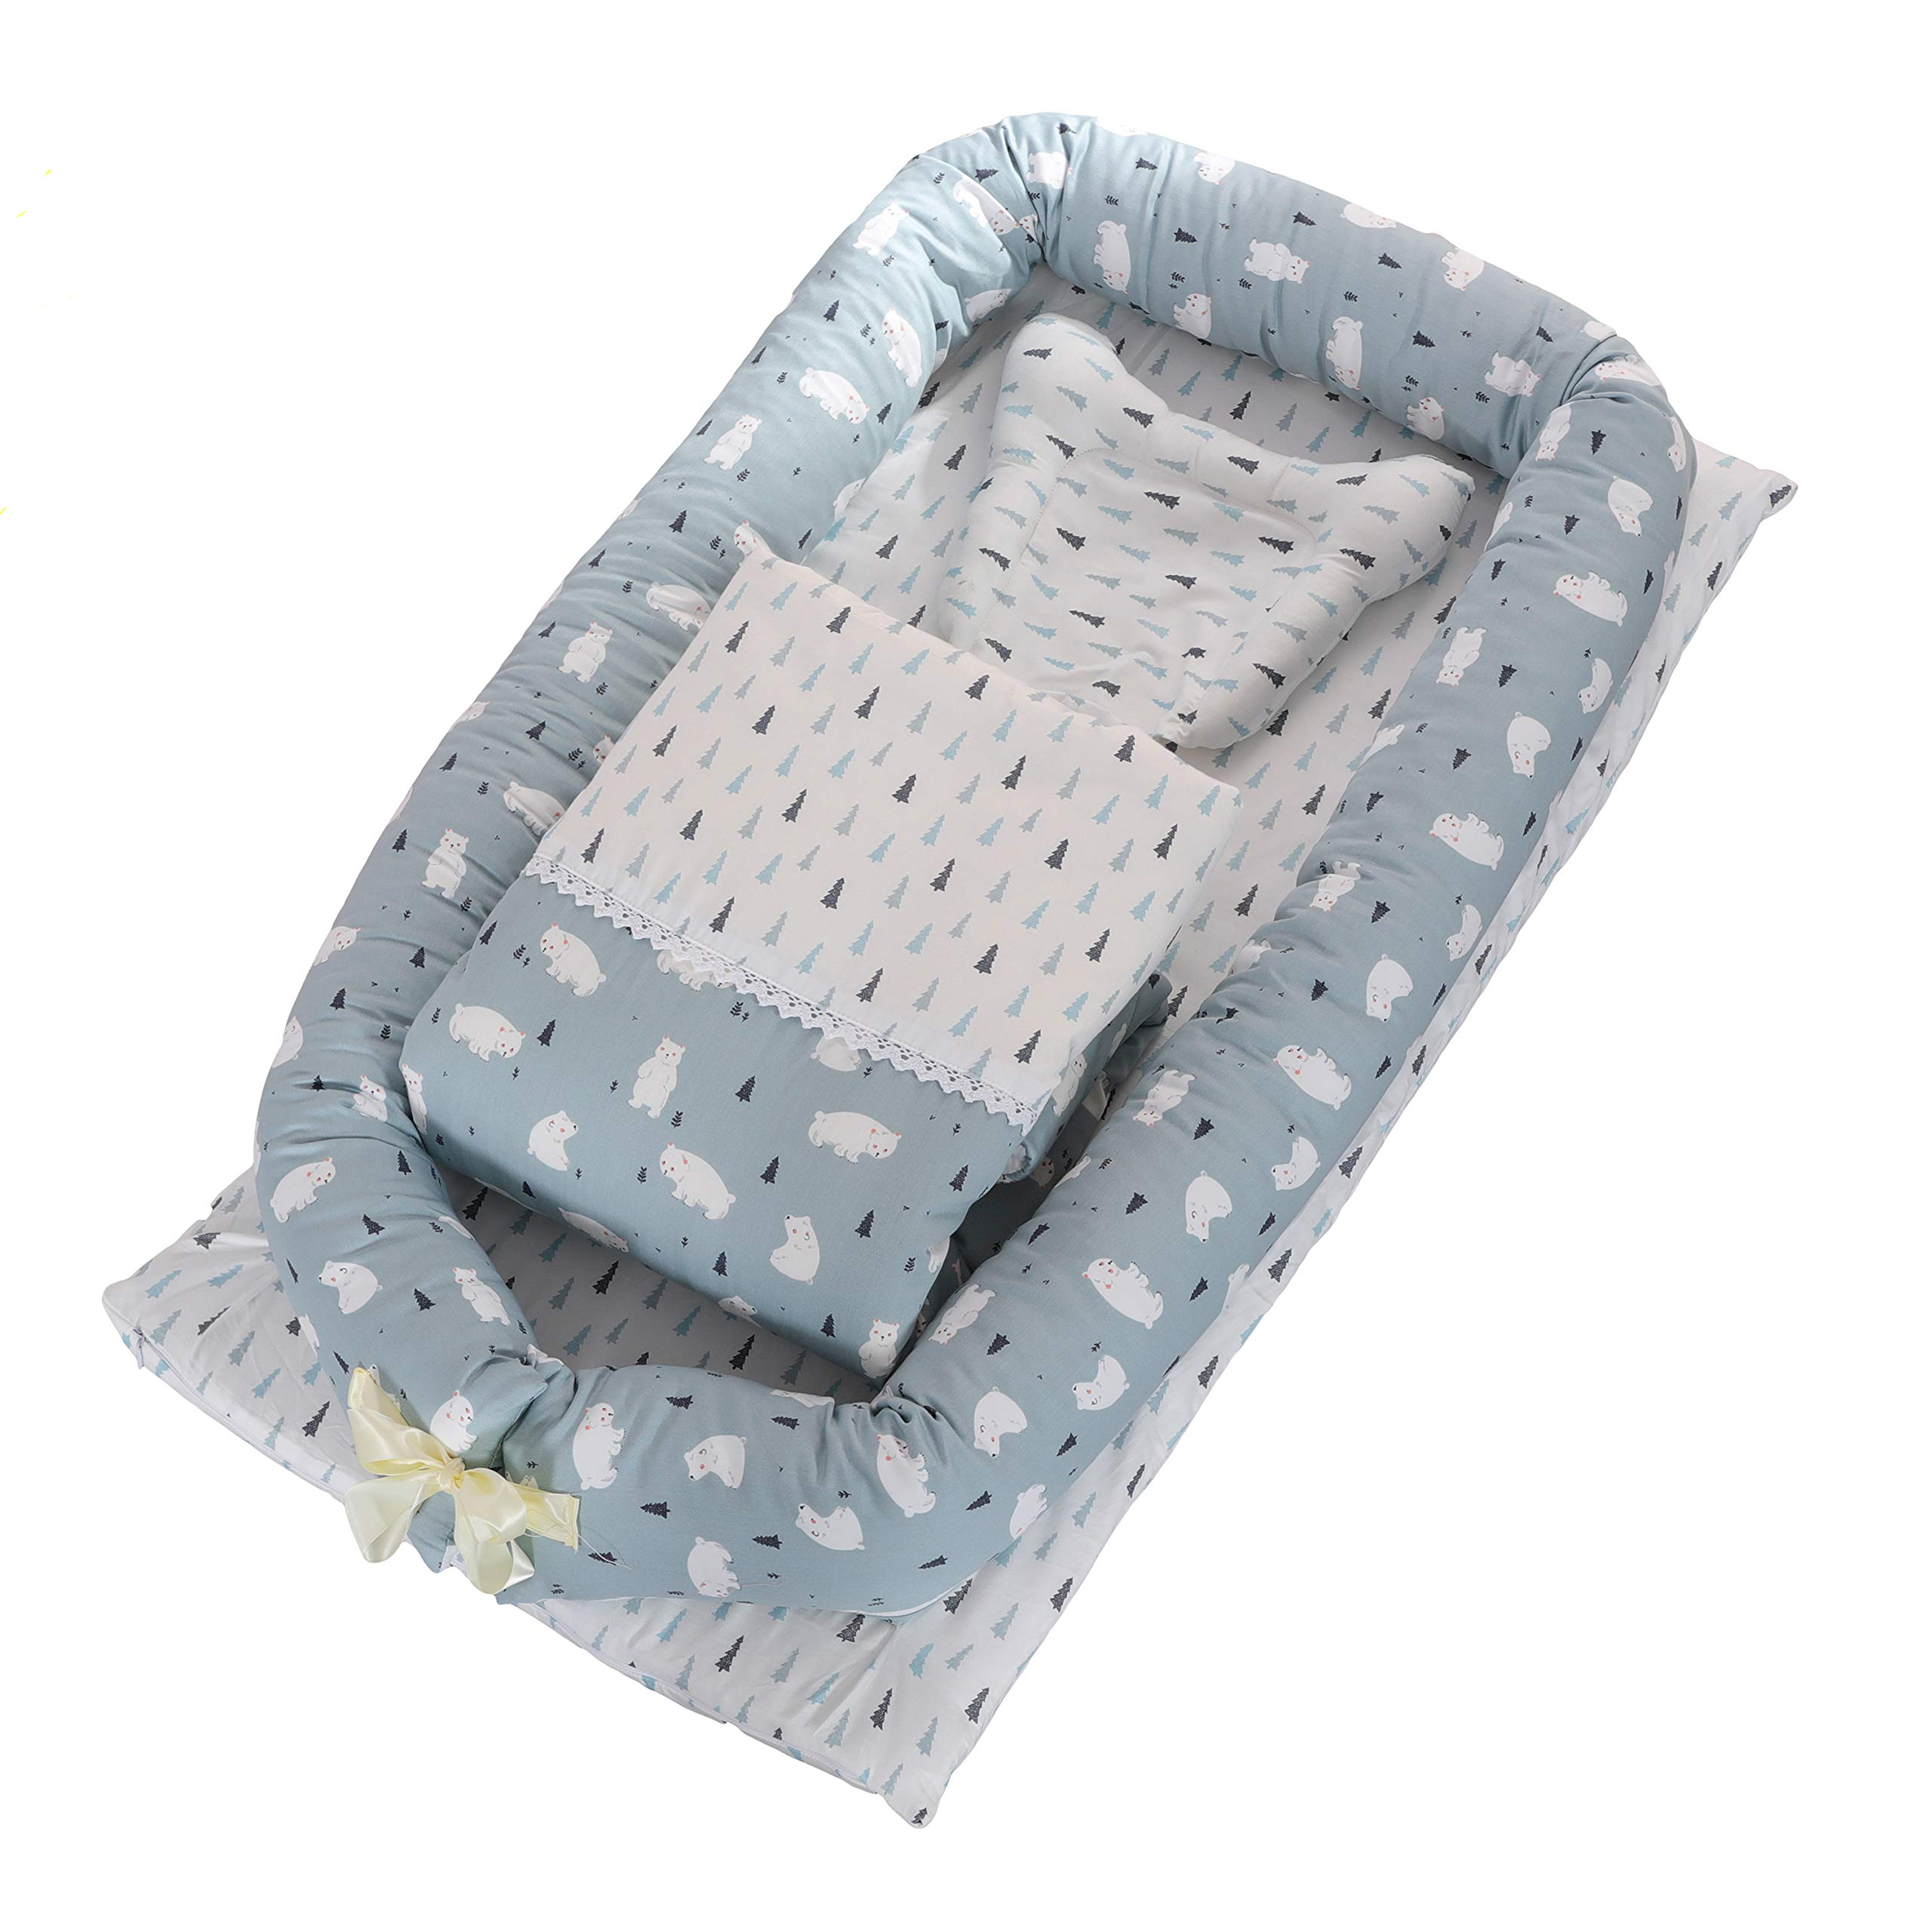 DOLDOA Baby Bassinet for Bed Portable Baby Lounger for Newborn,100% Cotton Newborn Portable Crib,Breathable and Hypoallergenic Sleep Nest Newborn Lounger Pillow for Bedroom/Travel (Bear)